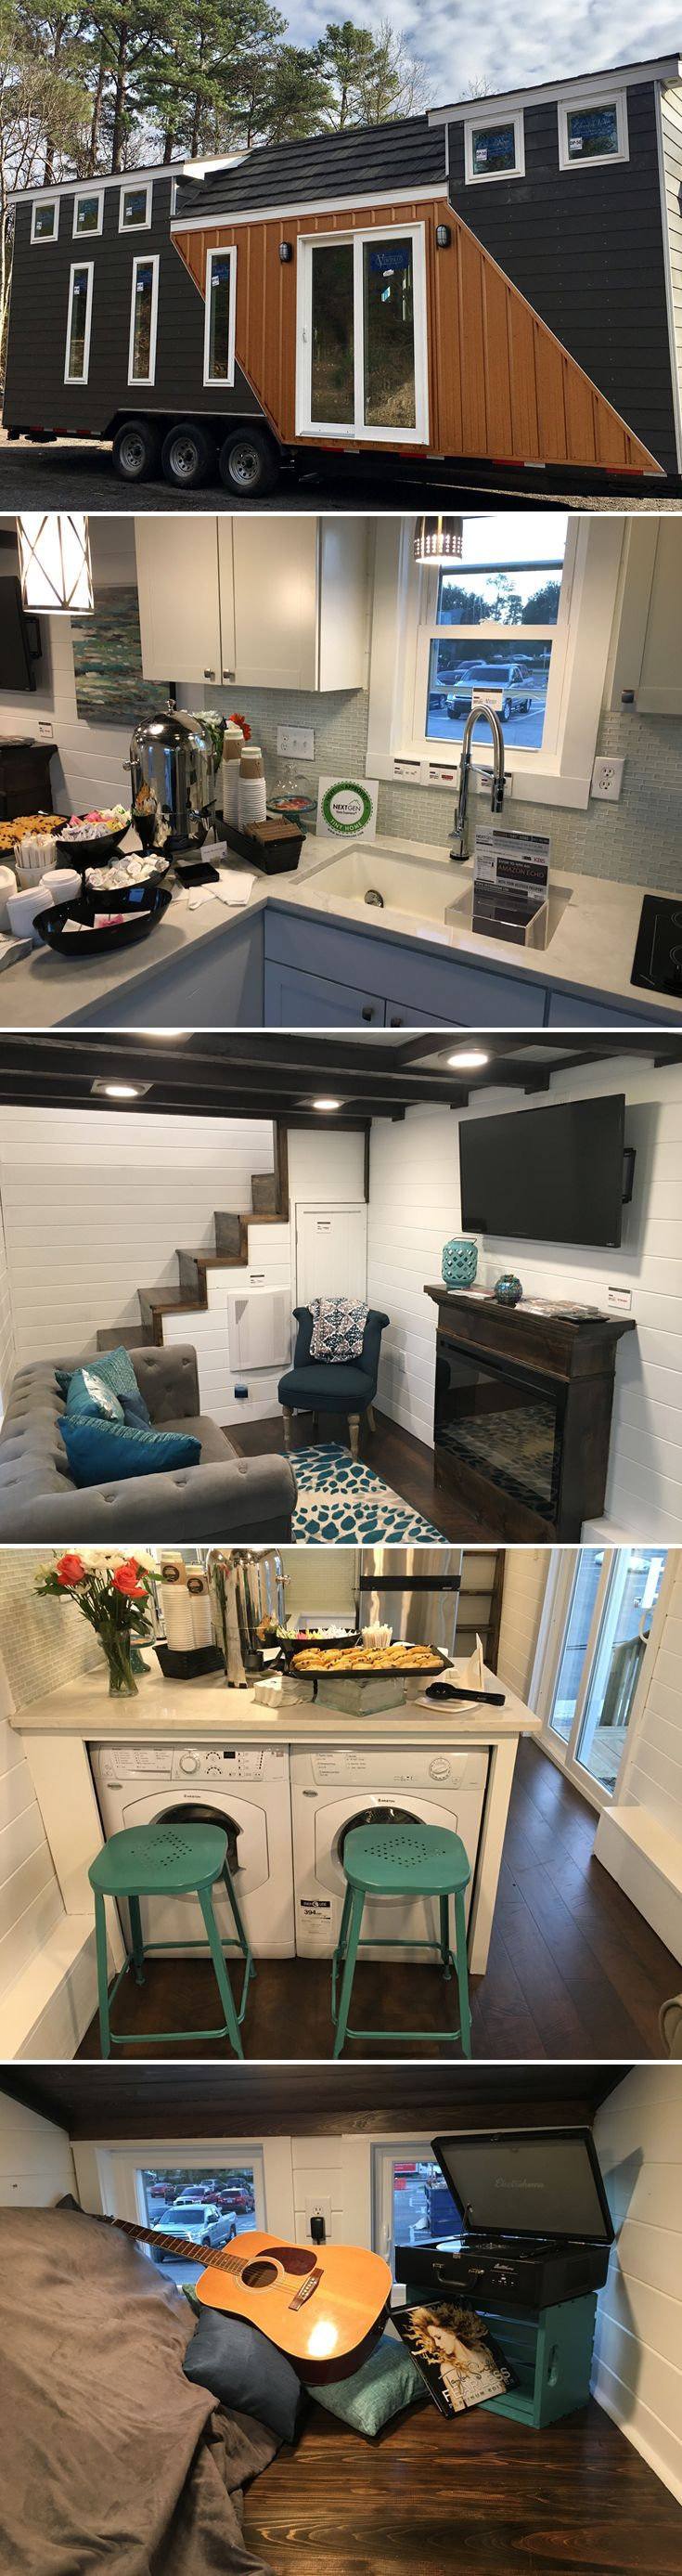 A 28' two bedroom tiny house by Alabama Tiny Homes. The stairs to the bedroom lofts are located along the far walls, which help open up the living space.